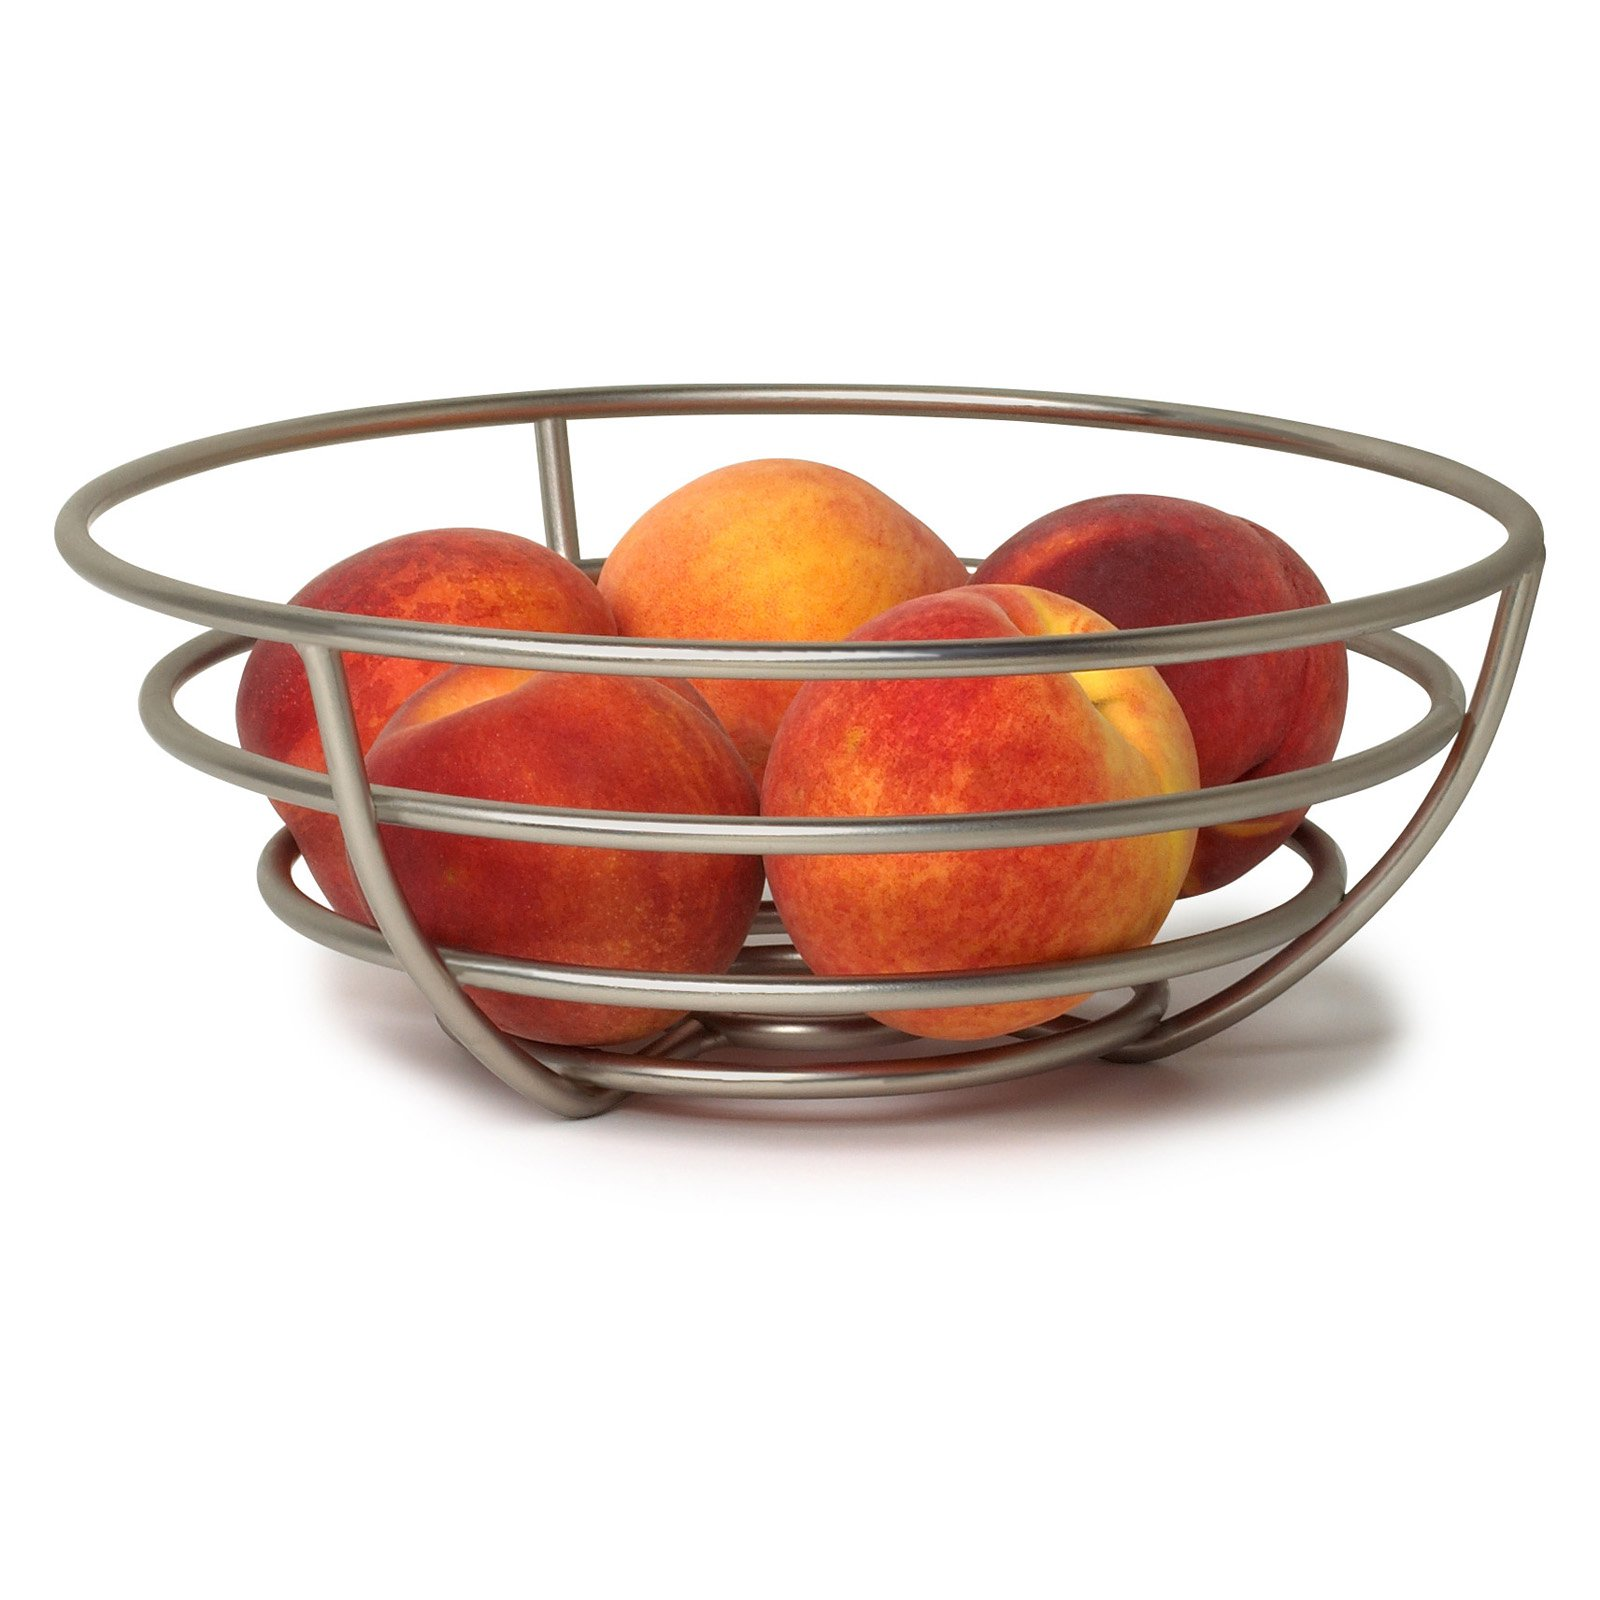 Spectrum Diversified Euro Fruit Bowl